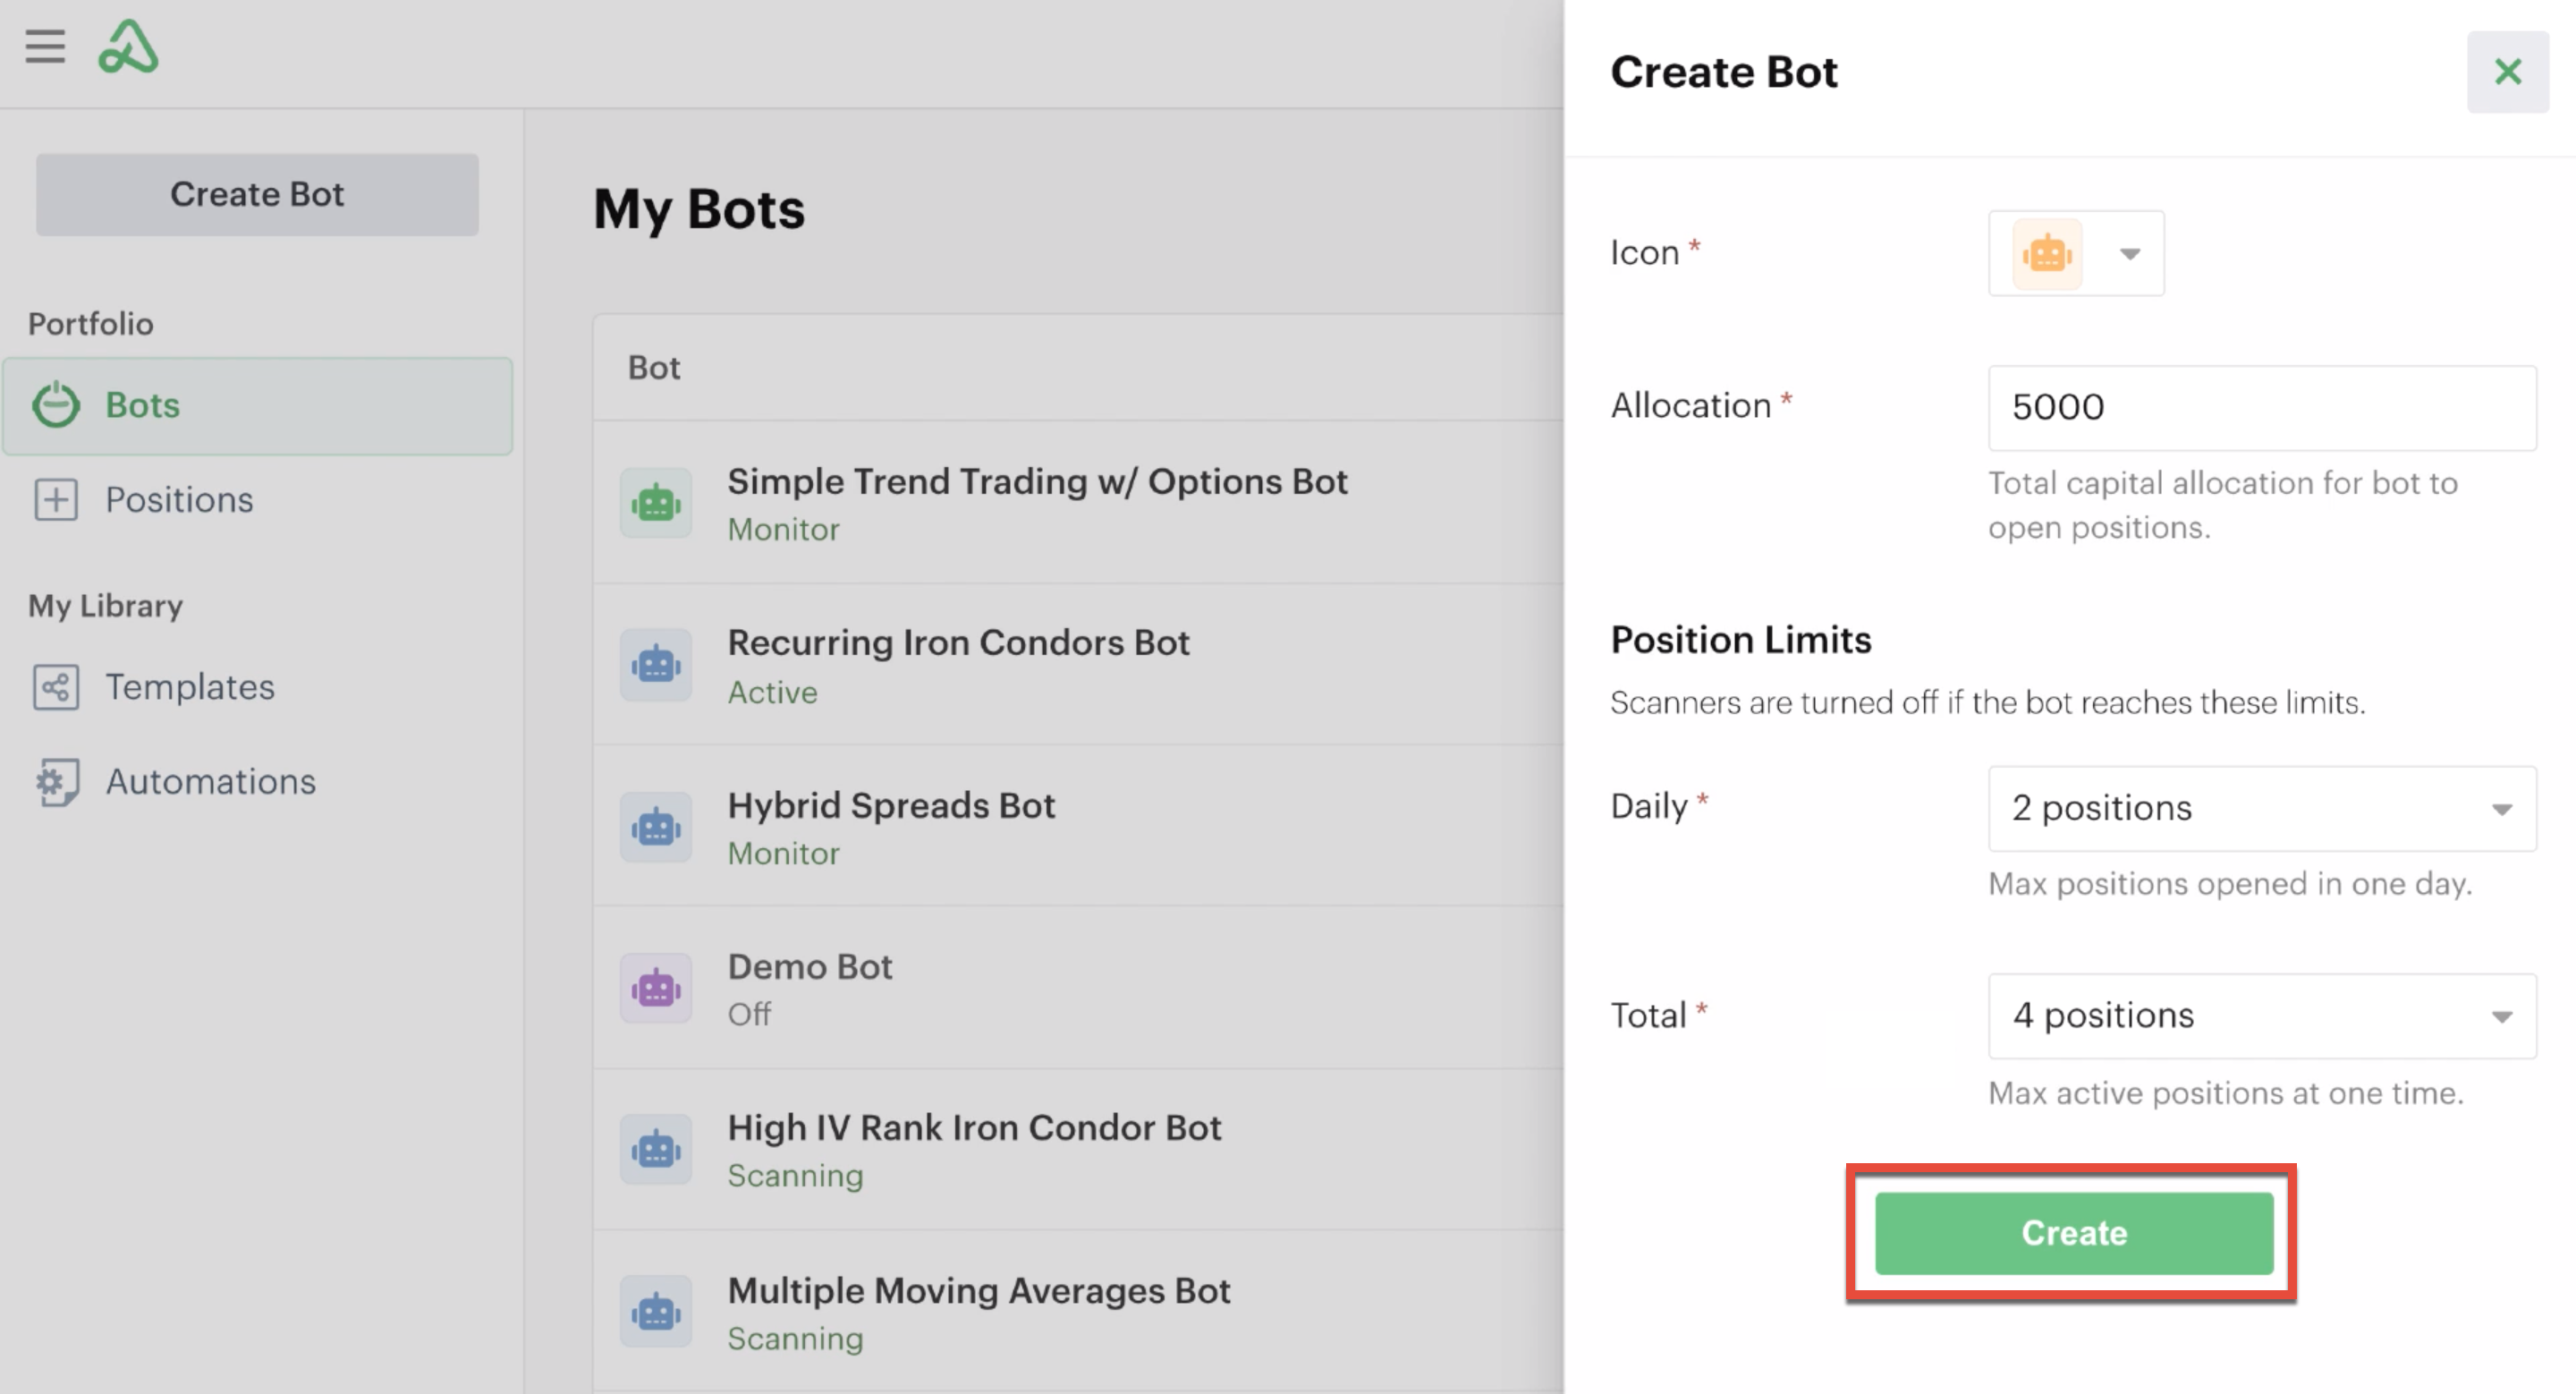 New bot ready to be created